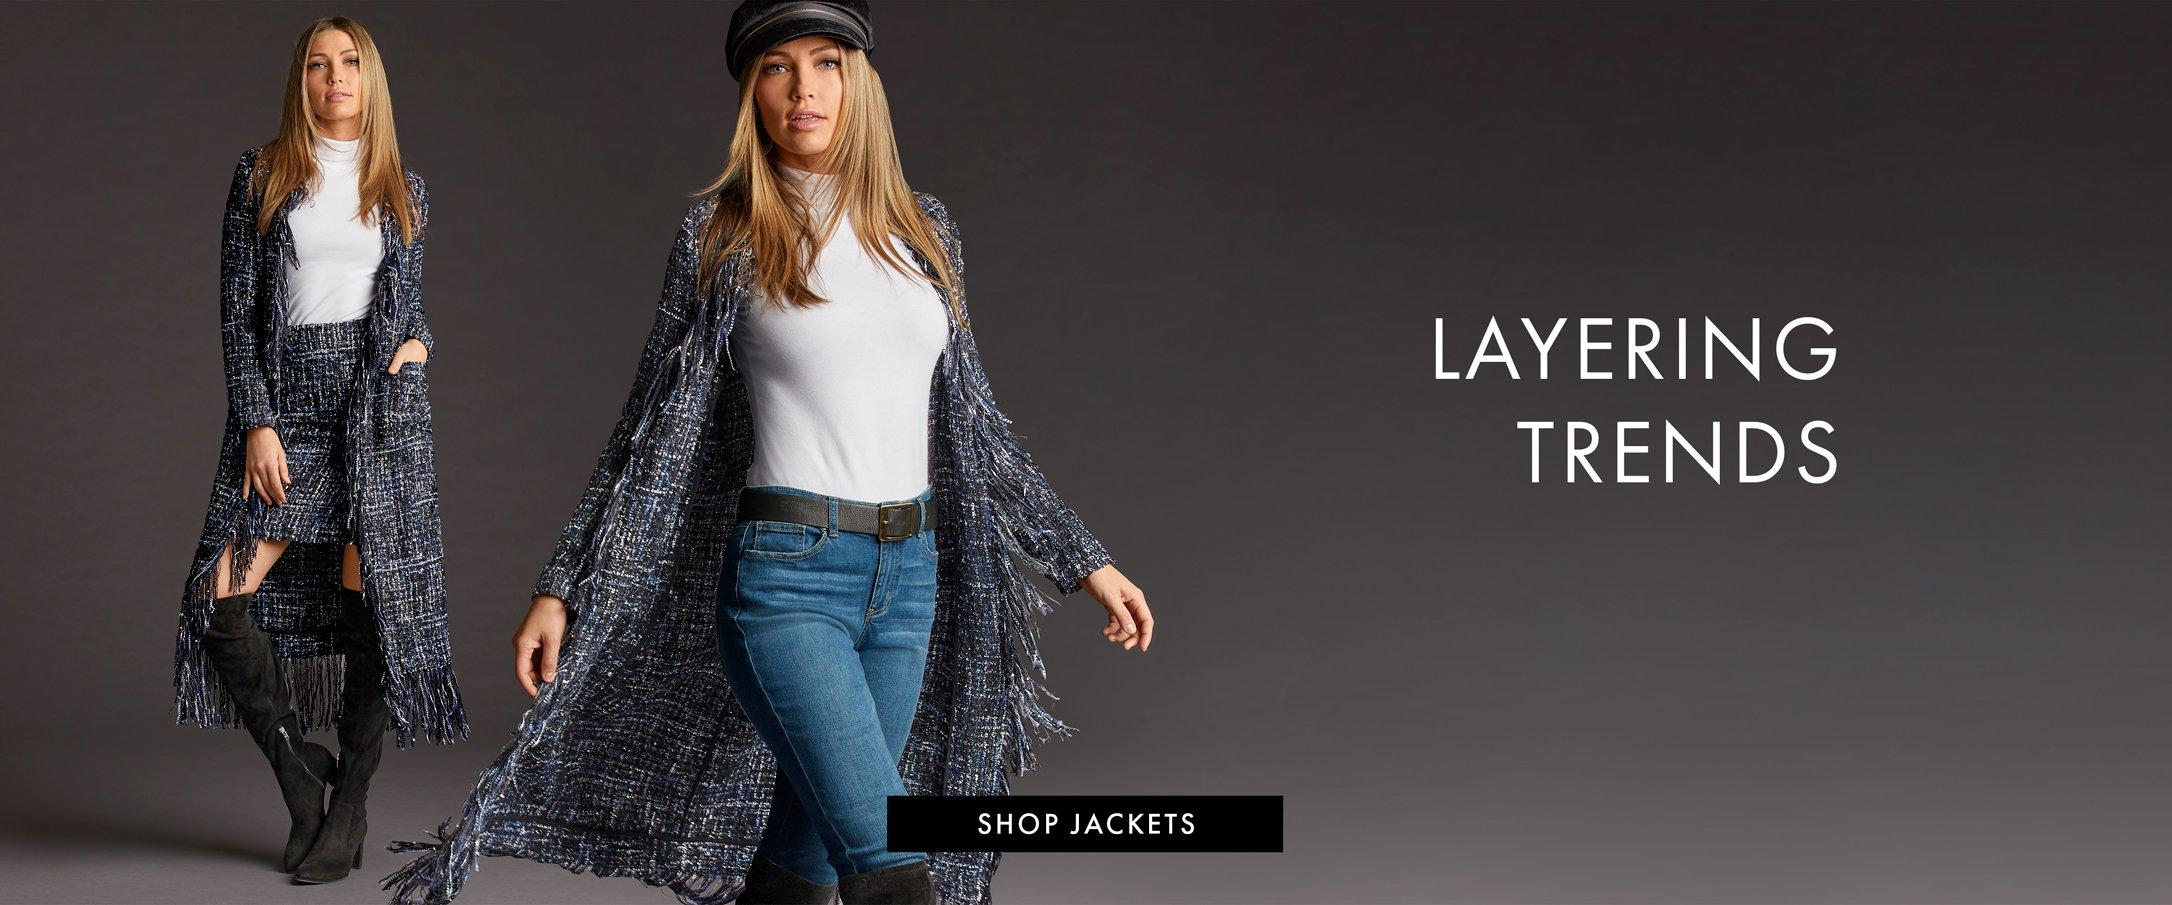 left model wearing a navy tweed fringe duster, white turtleneck top, navy tweed skirt, and black over-the-knee boots. right model wearing a black hat, white turtleneck top, navy tweed fringe duster, black belt, jeans, and black over-the-knee boots. right text: layering trends. shop jackets.